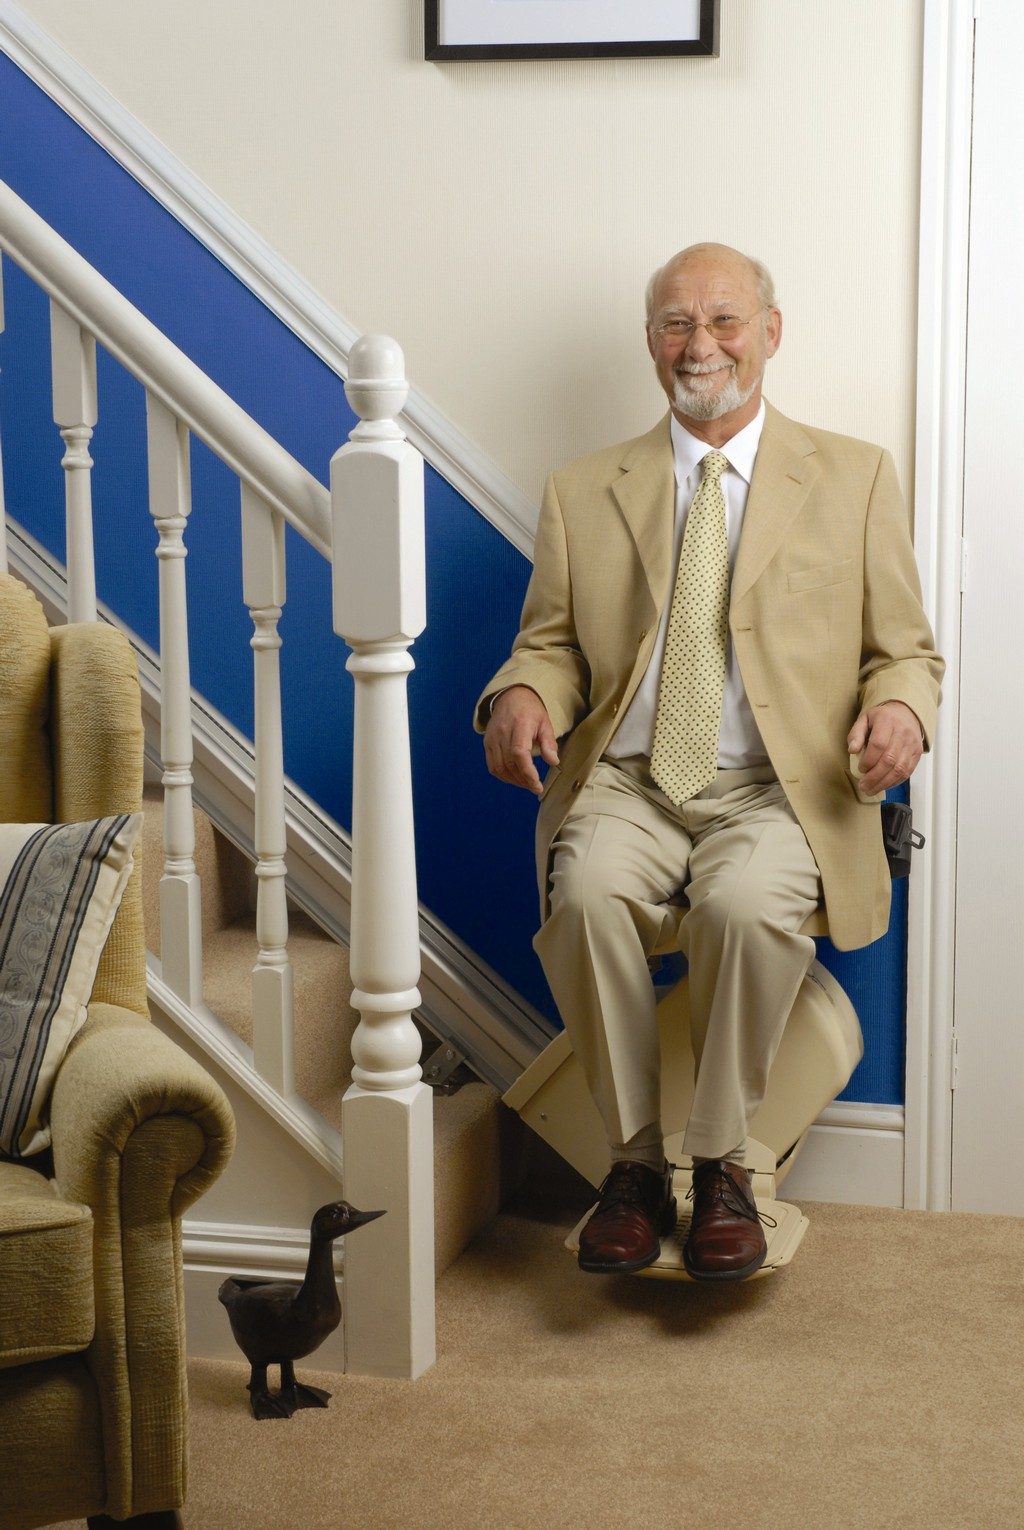 stairlifts reviews, stair lift disability, stairlifts summit, stair chair lift providers in cincinnati ohio